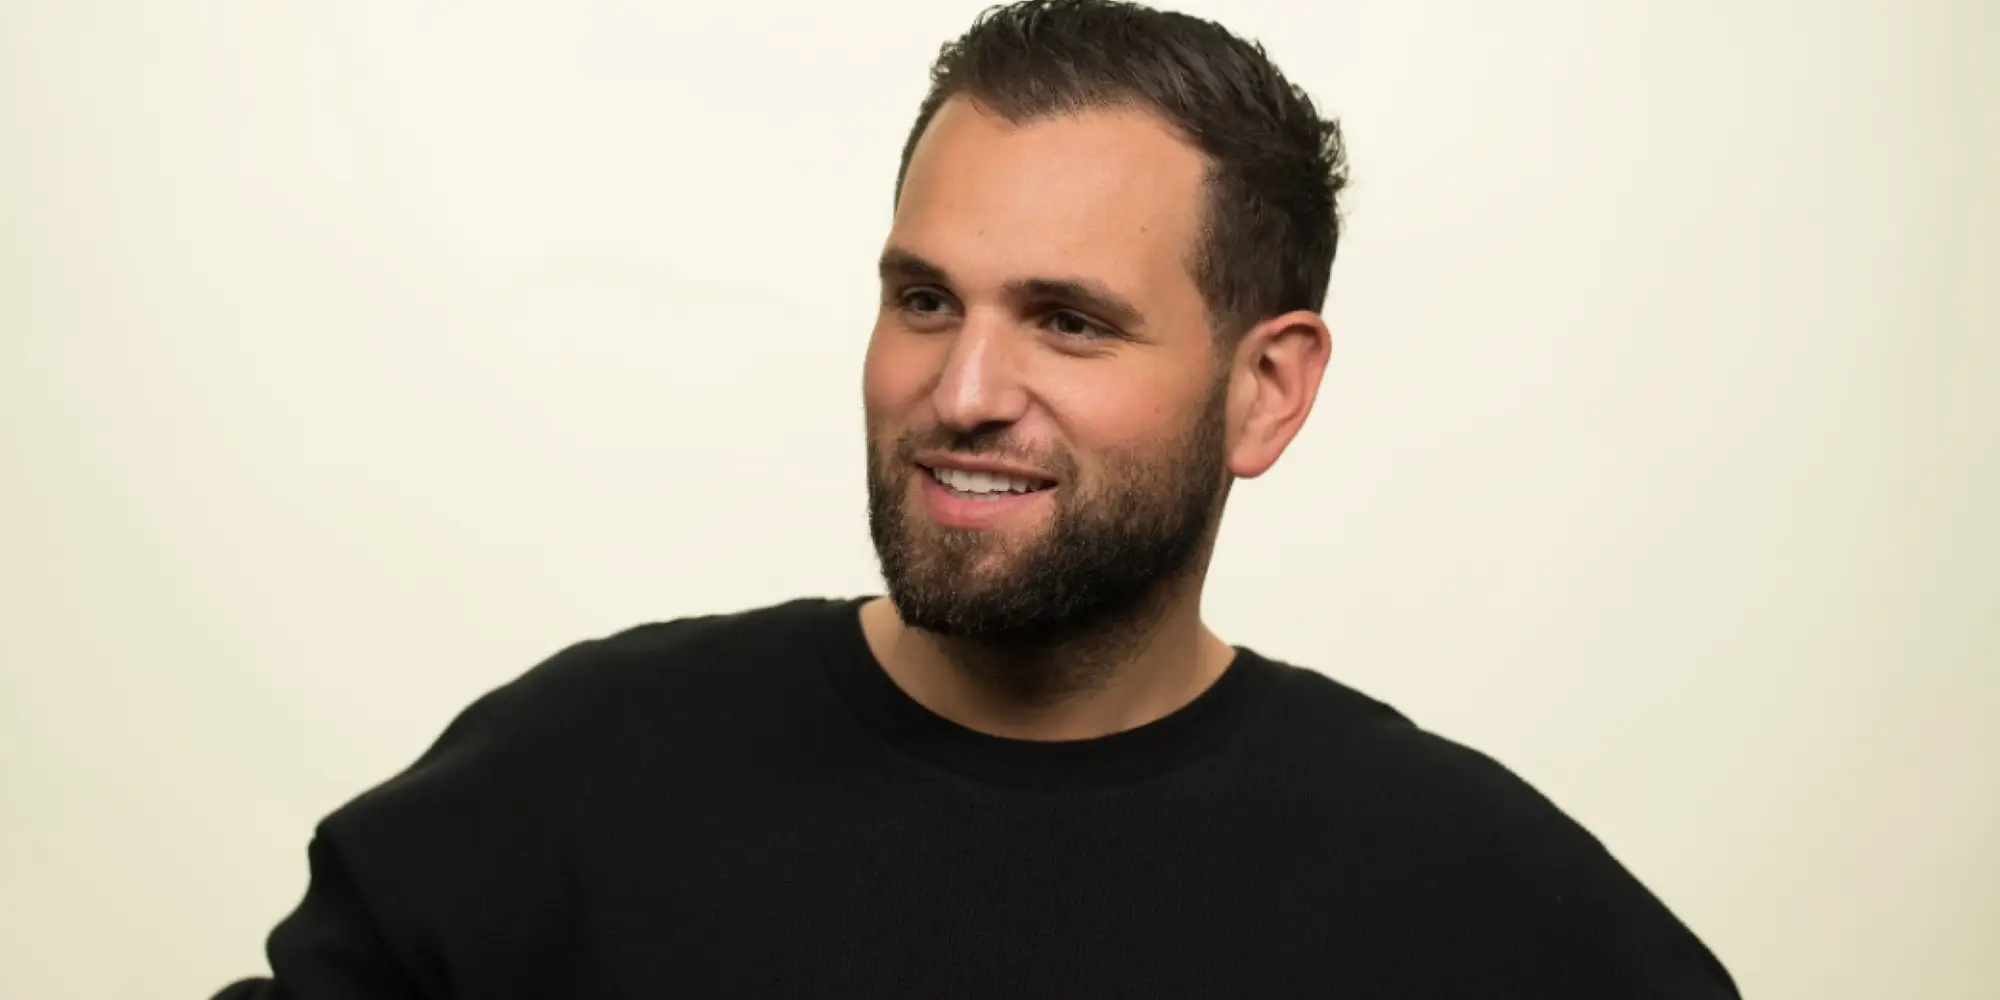 The British CEO of Pipe, a startup that's reached a $2 billion valuation in less than a year, says he's locked out of the US because of a crisis-level backlog in immigration processing